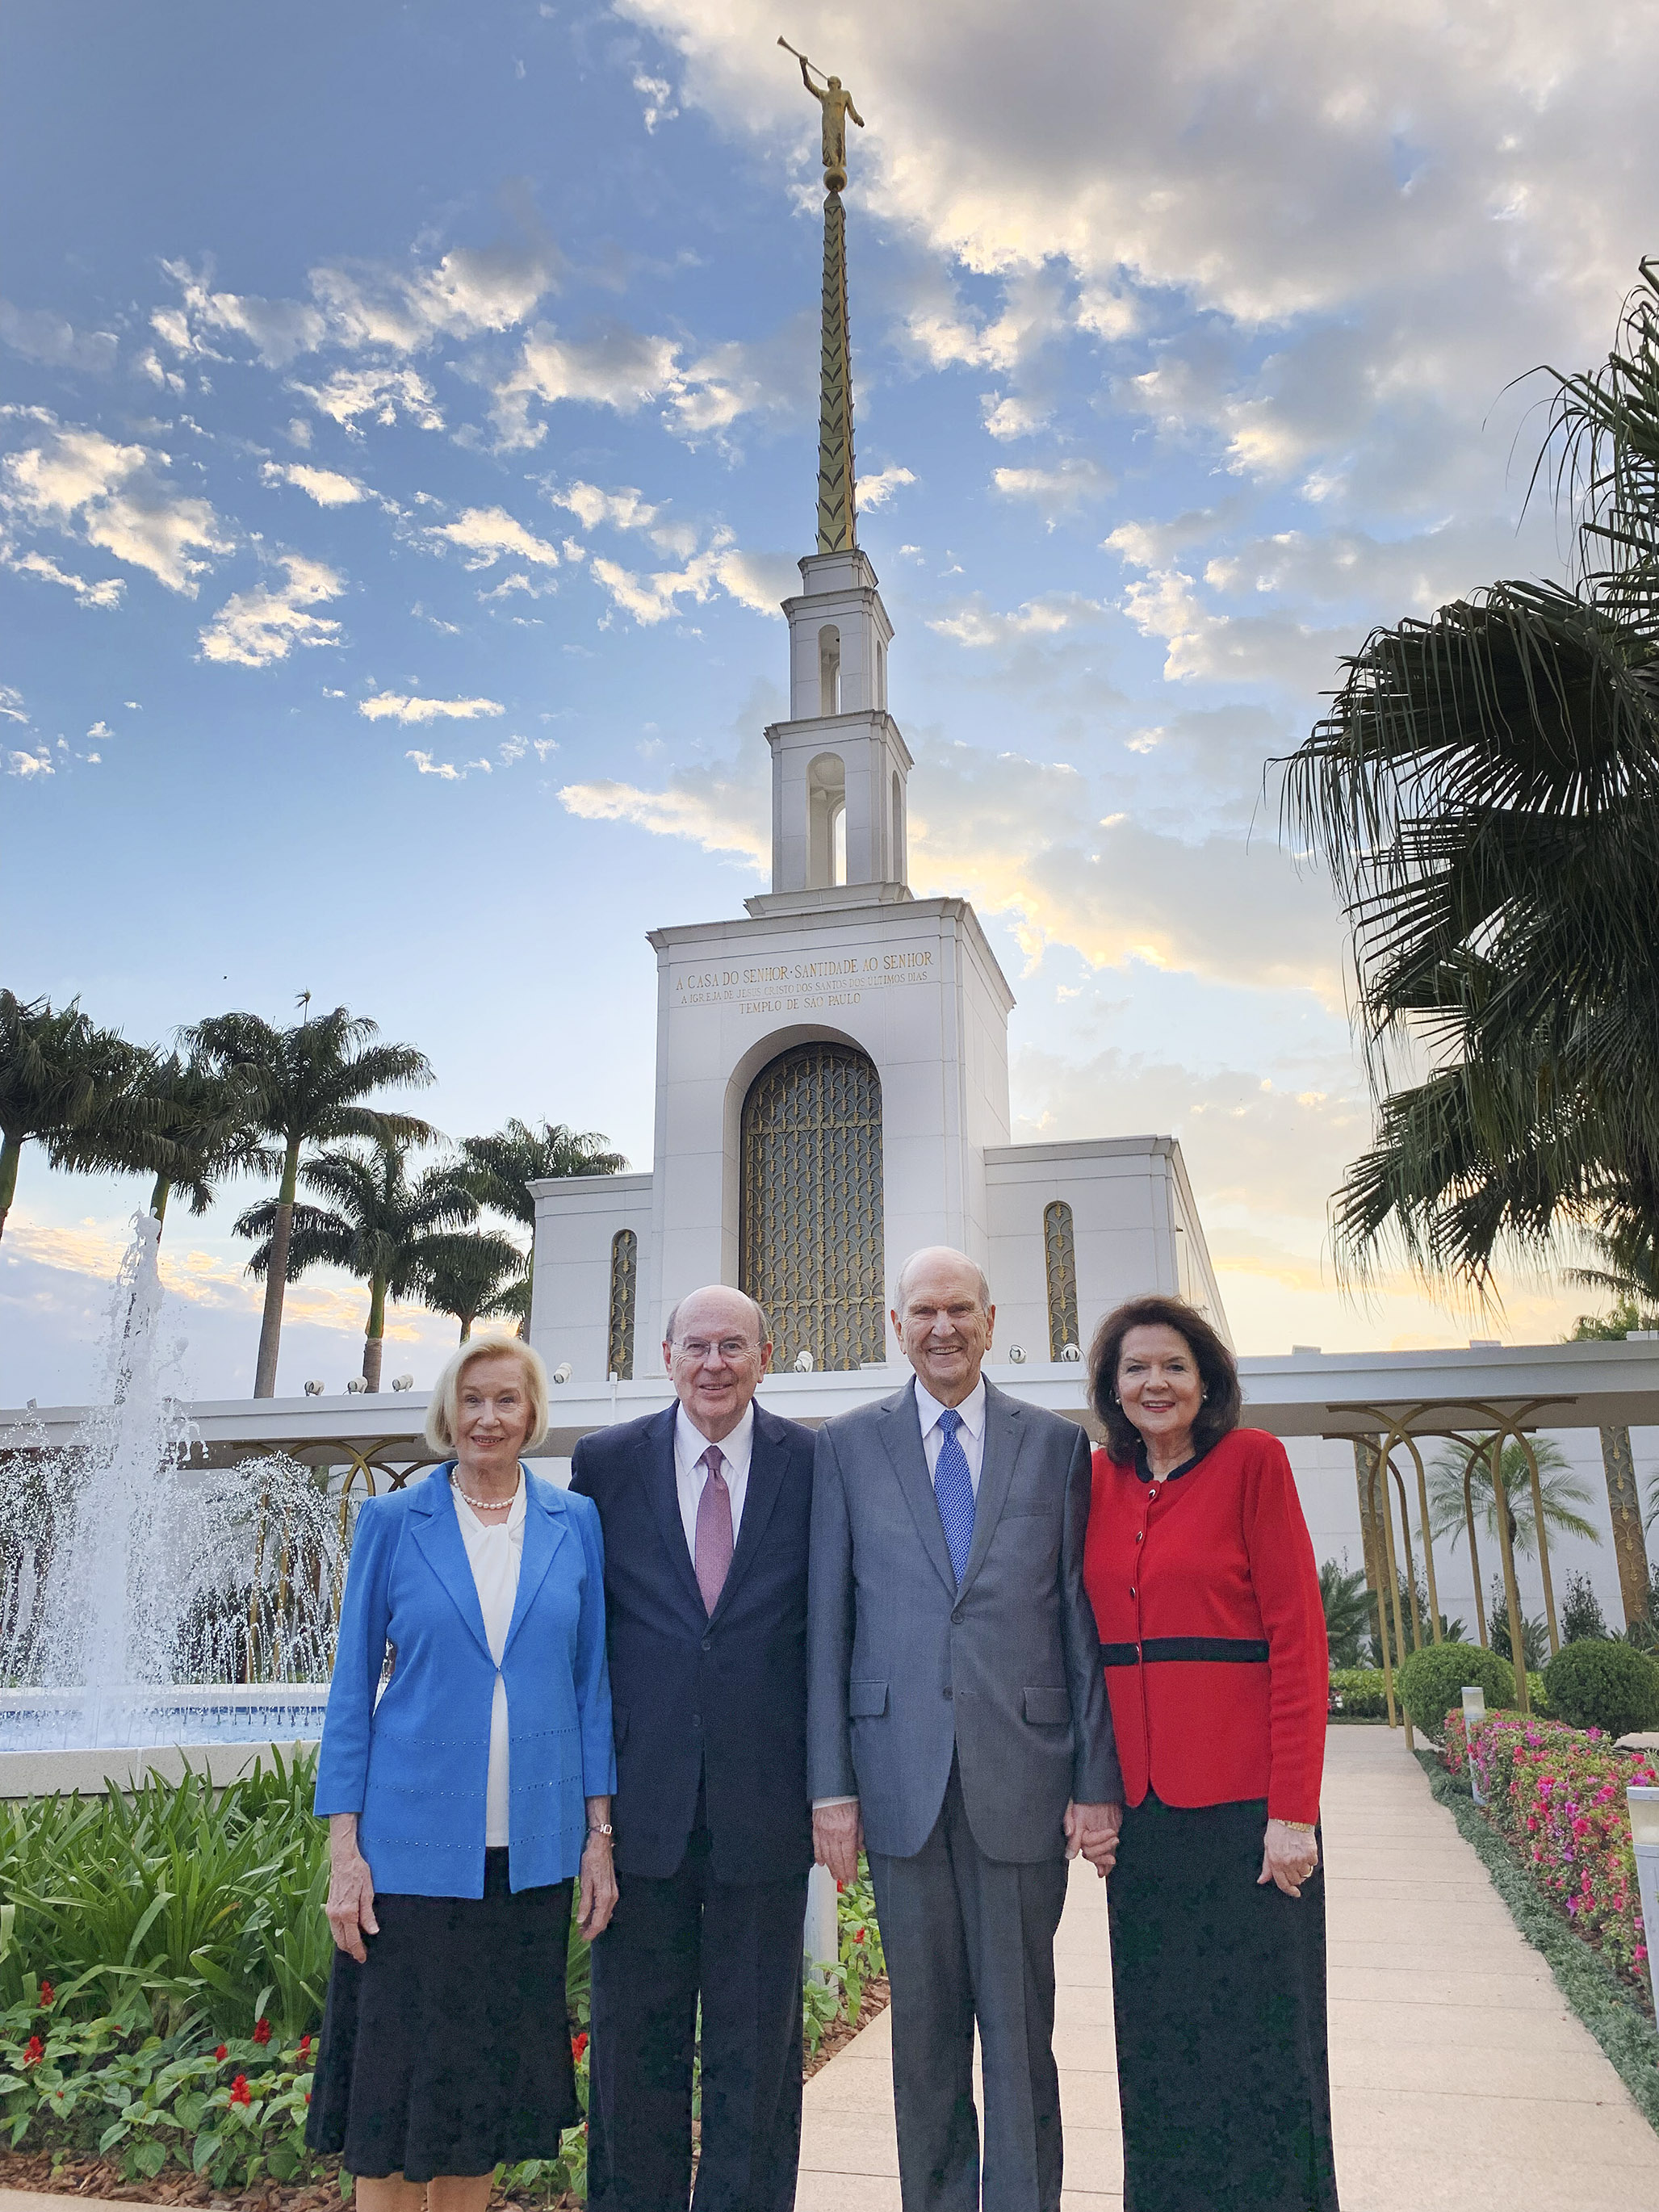 President Russell M. Nelson of The Church of Jesus Christ of Latter-day Saints and his wife, Sister Wendy Nelson, and Elder Quentin L. Cook of the Quorum of the Twelve Apostles and his wife, Sister Mary Cook, pose near the Sao Paulo Brazil Temple in Sao Paulo, Brazil, on Aug. 31, 2019.